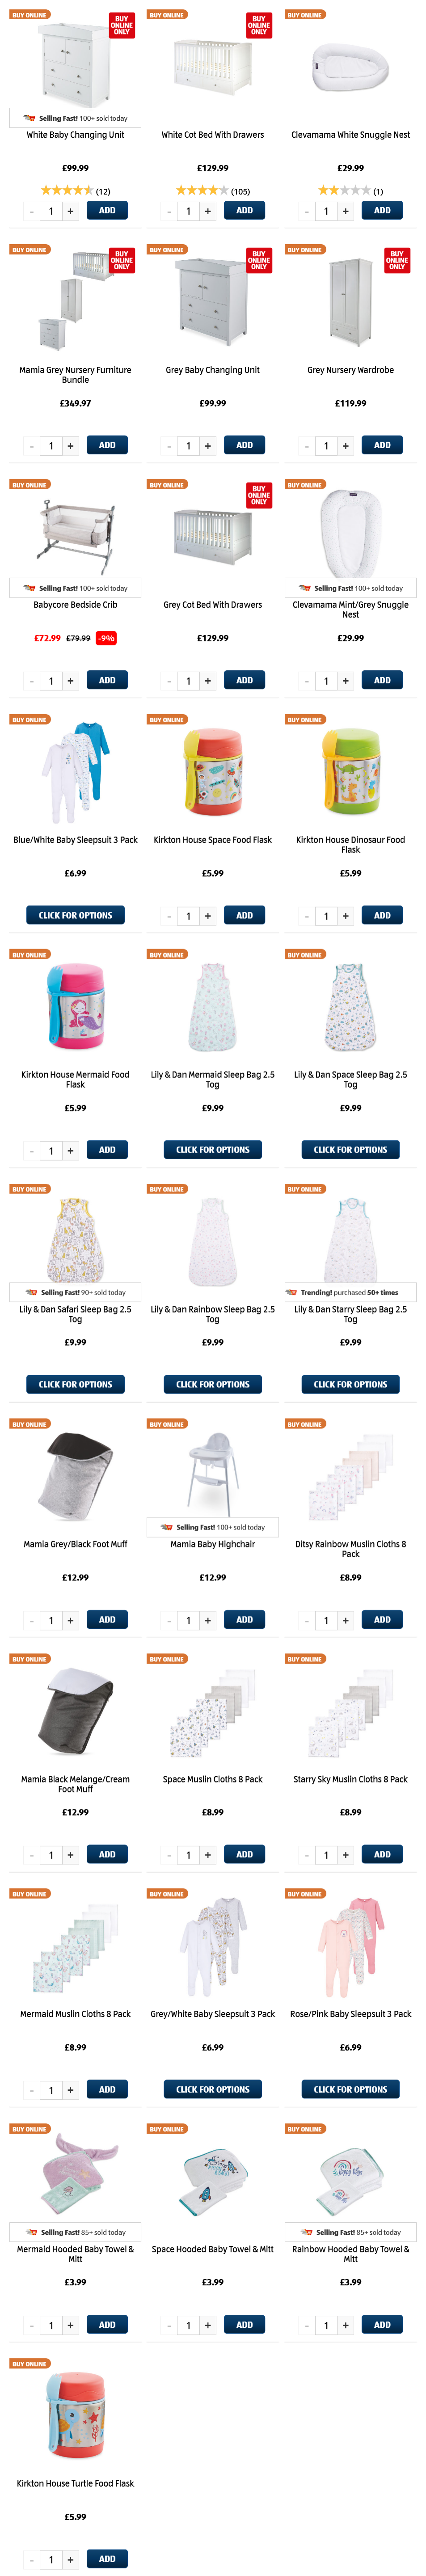 ALDI Thursday Offers 18th February 2021 ALDI Baby & Toddler